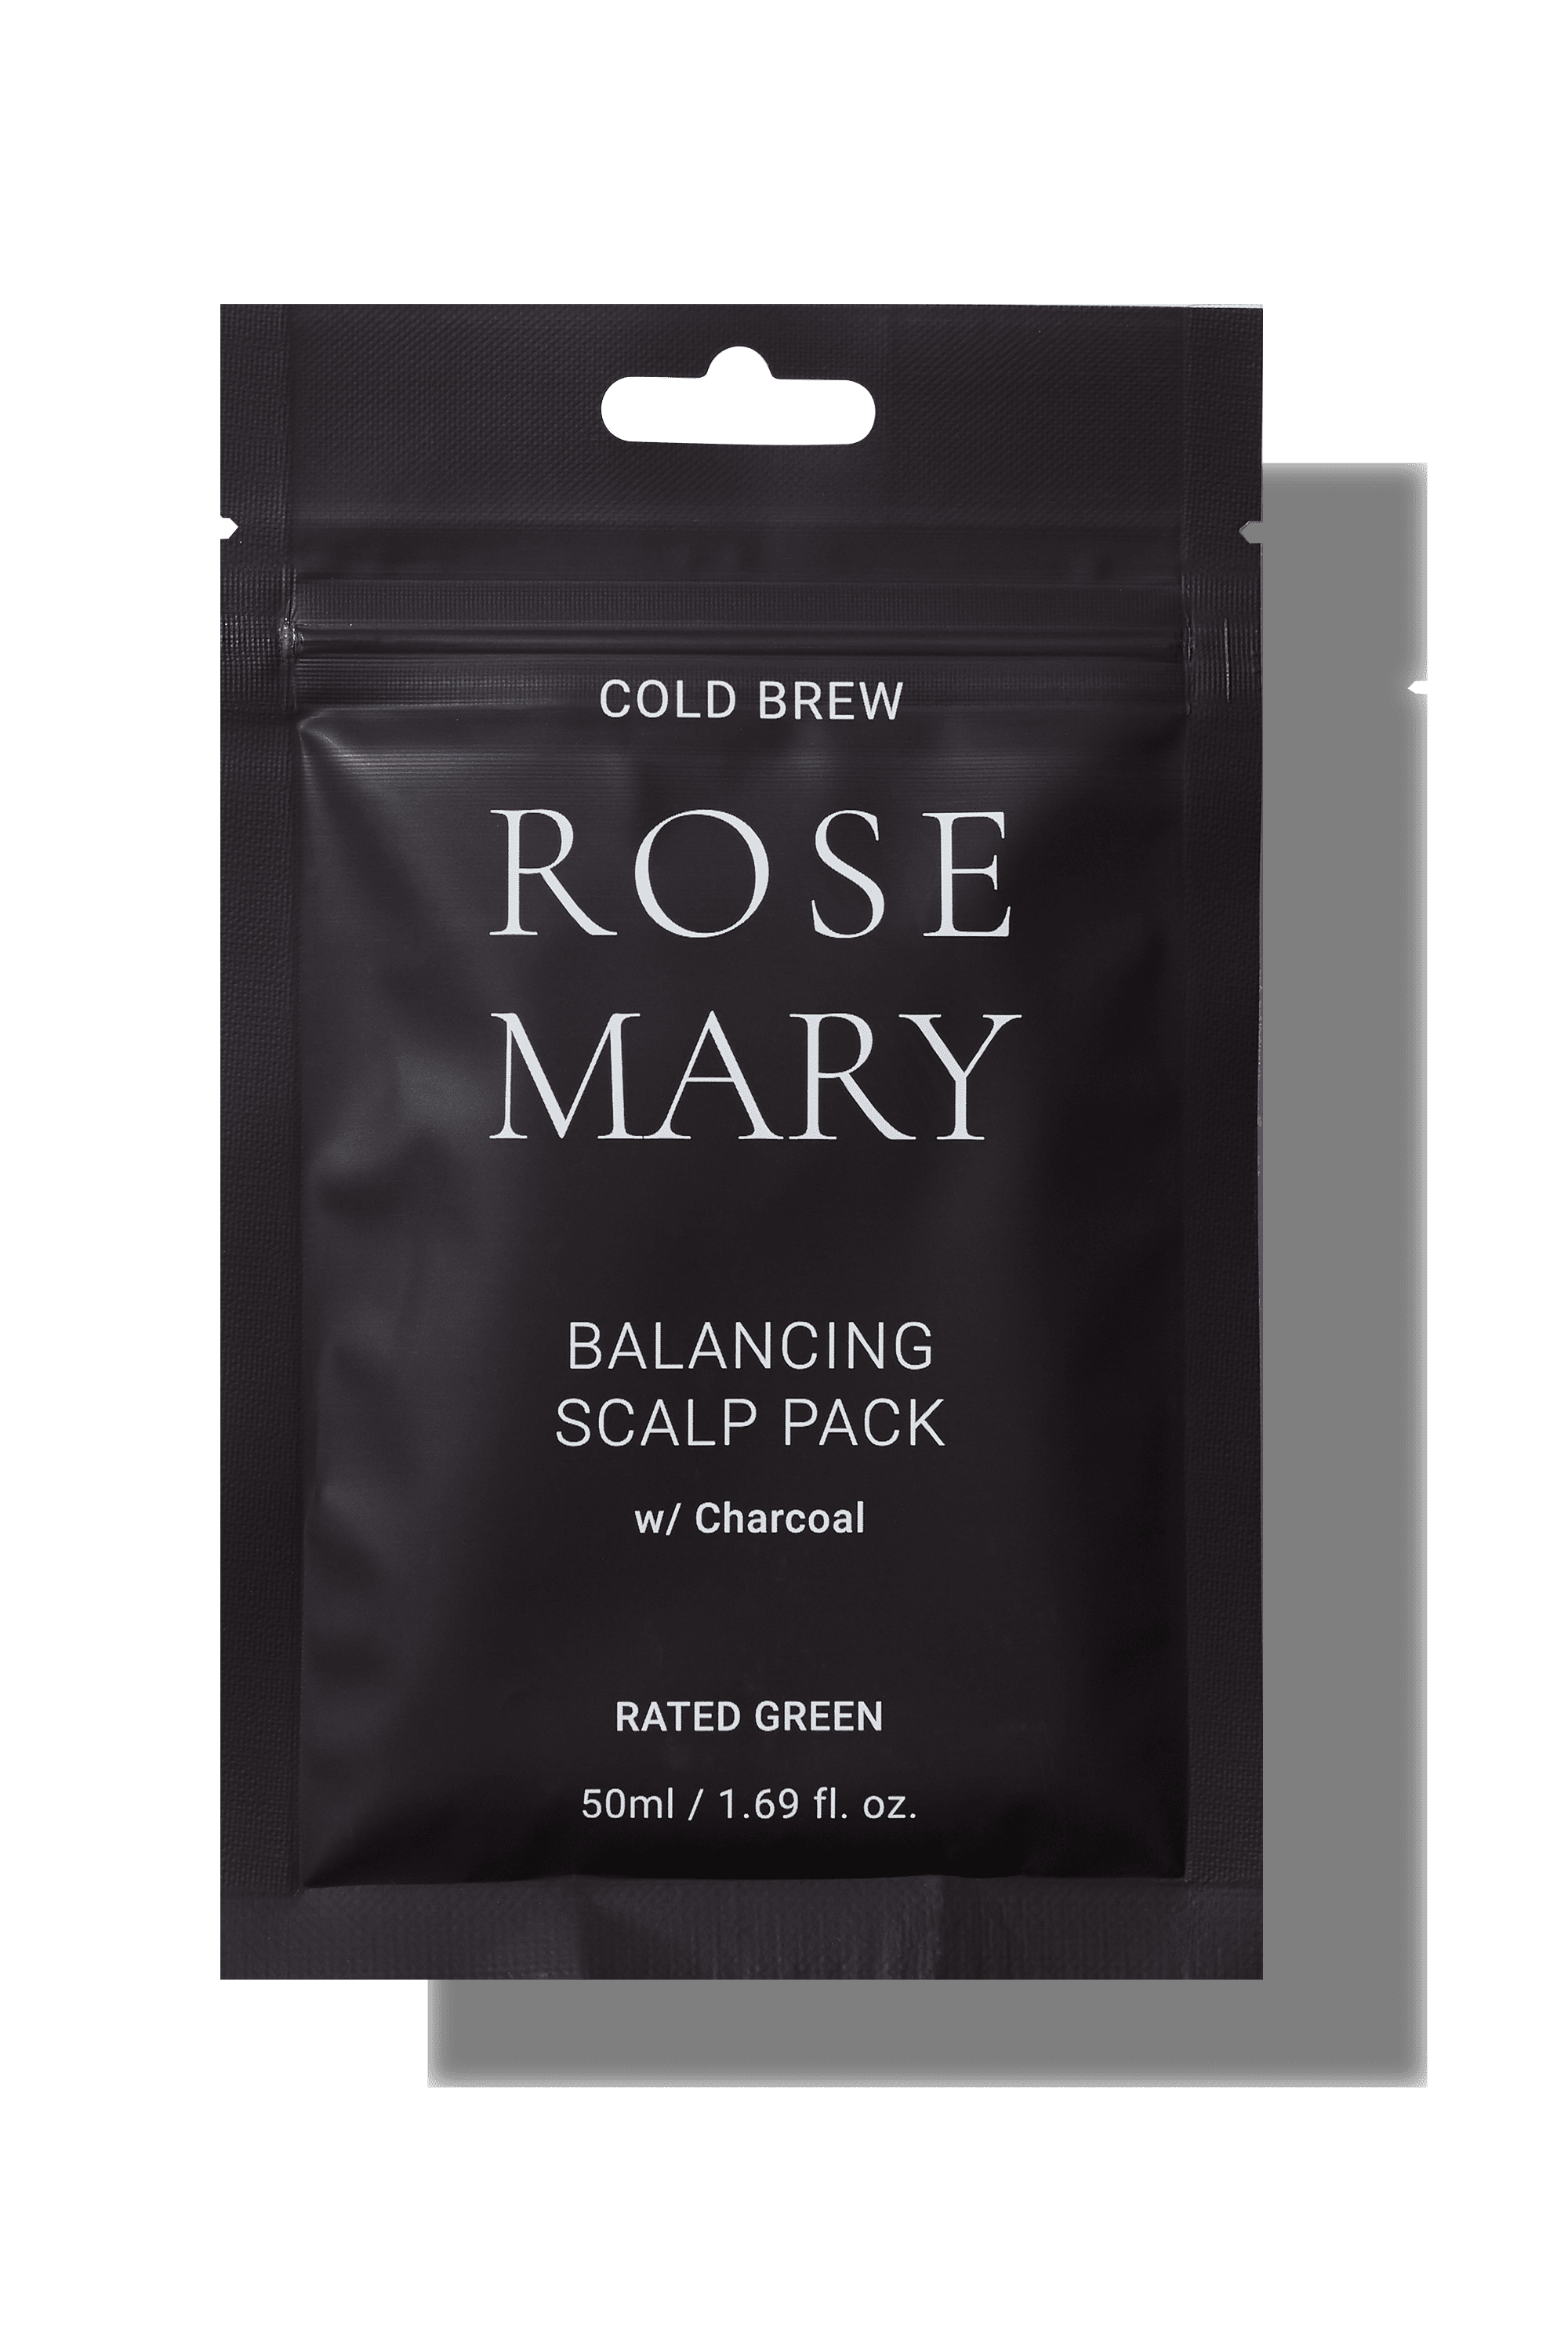 Cold Brew Rosemary Balancing Scalp Pack With Charcoal_Rated Green